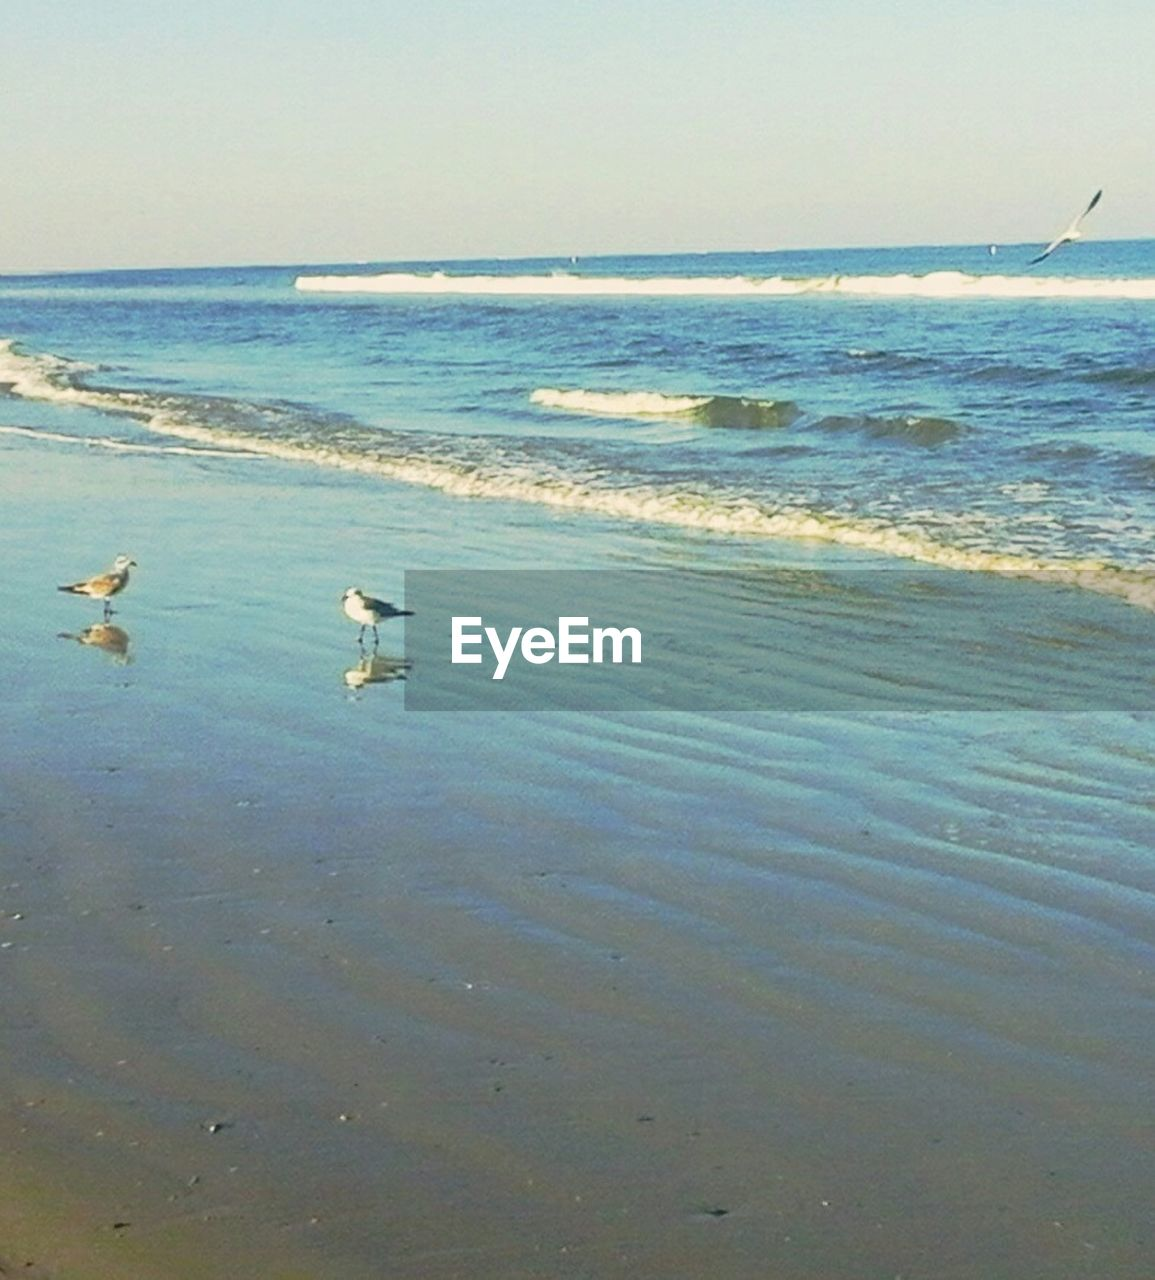 sea, bird, water, animal themes, nature, animals in the wild, one animal, beauty in nature, horizon over water, beach, scenics, no people, day, wave, animal wildlife, tranquility, outdoors, seagull, sky, swimming, swan